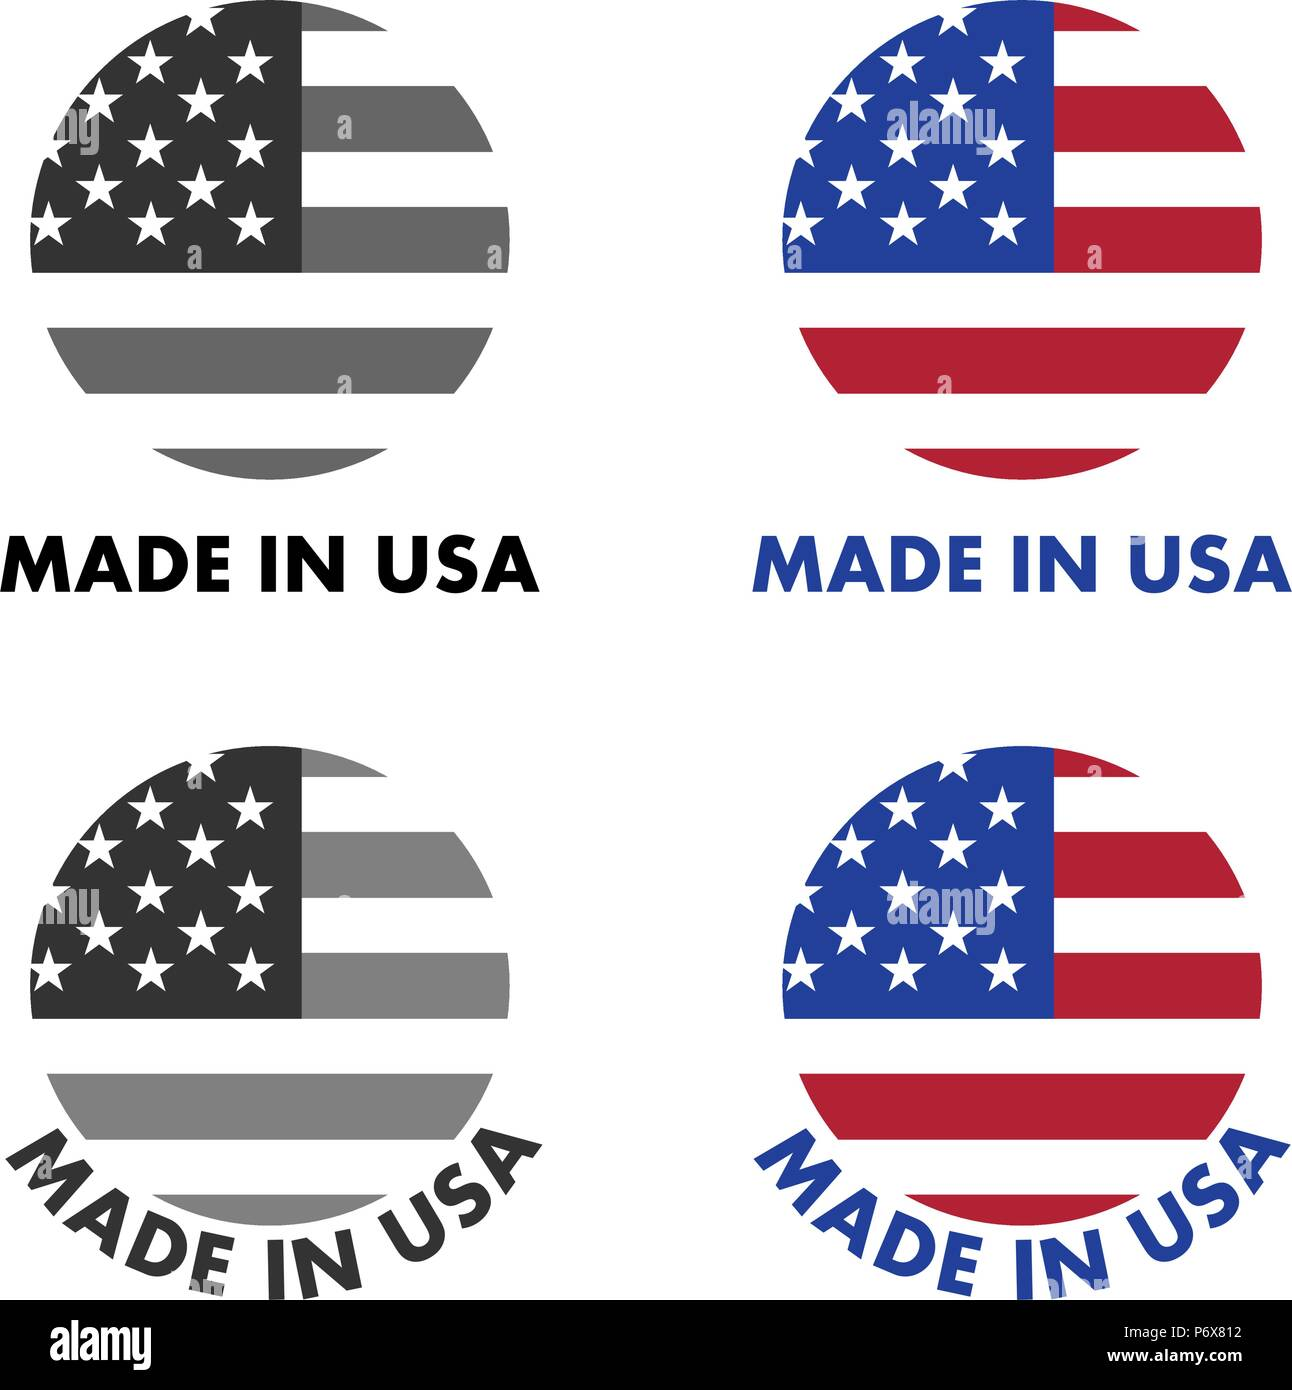 Made in USA label. Red stripes and white stars on blue field, clipped to circle with text below. Black & white / color version. Stock Vector